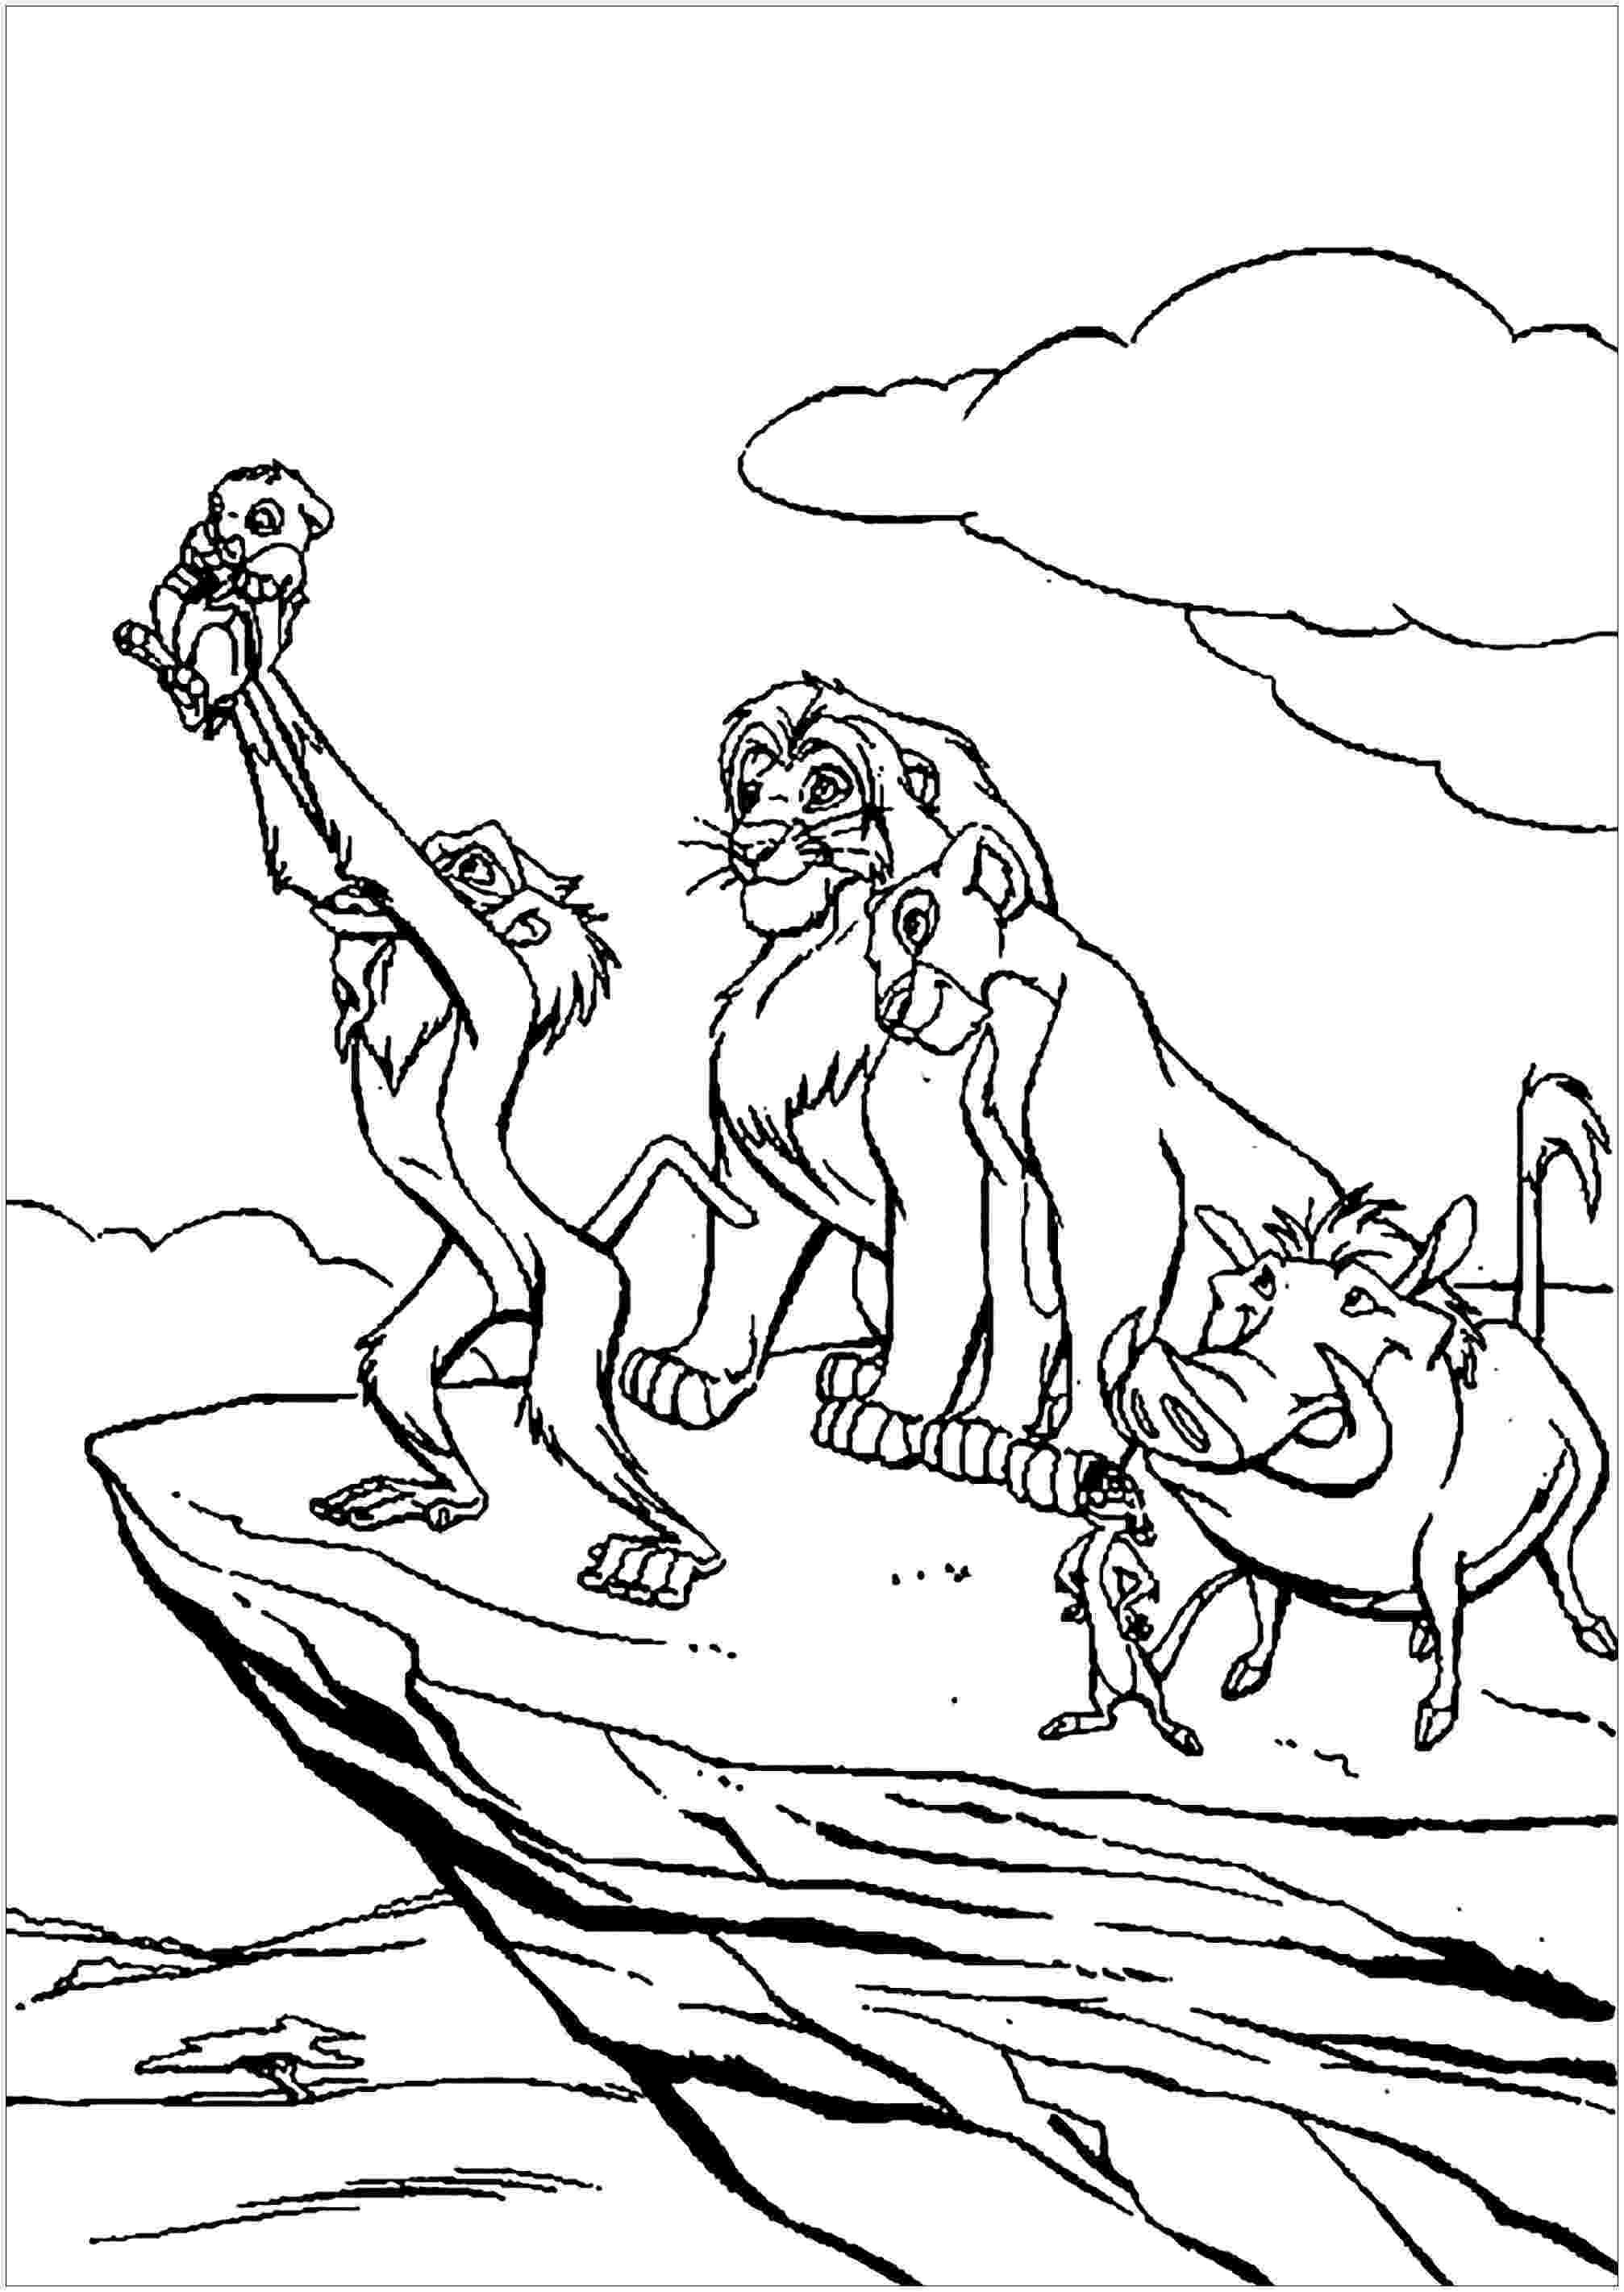 lion king coloring book pages lion king coloring pages simba fischer buzz book king pages lion coloring